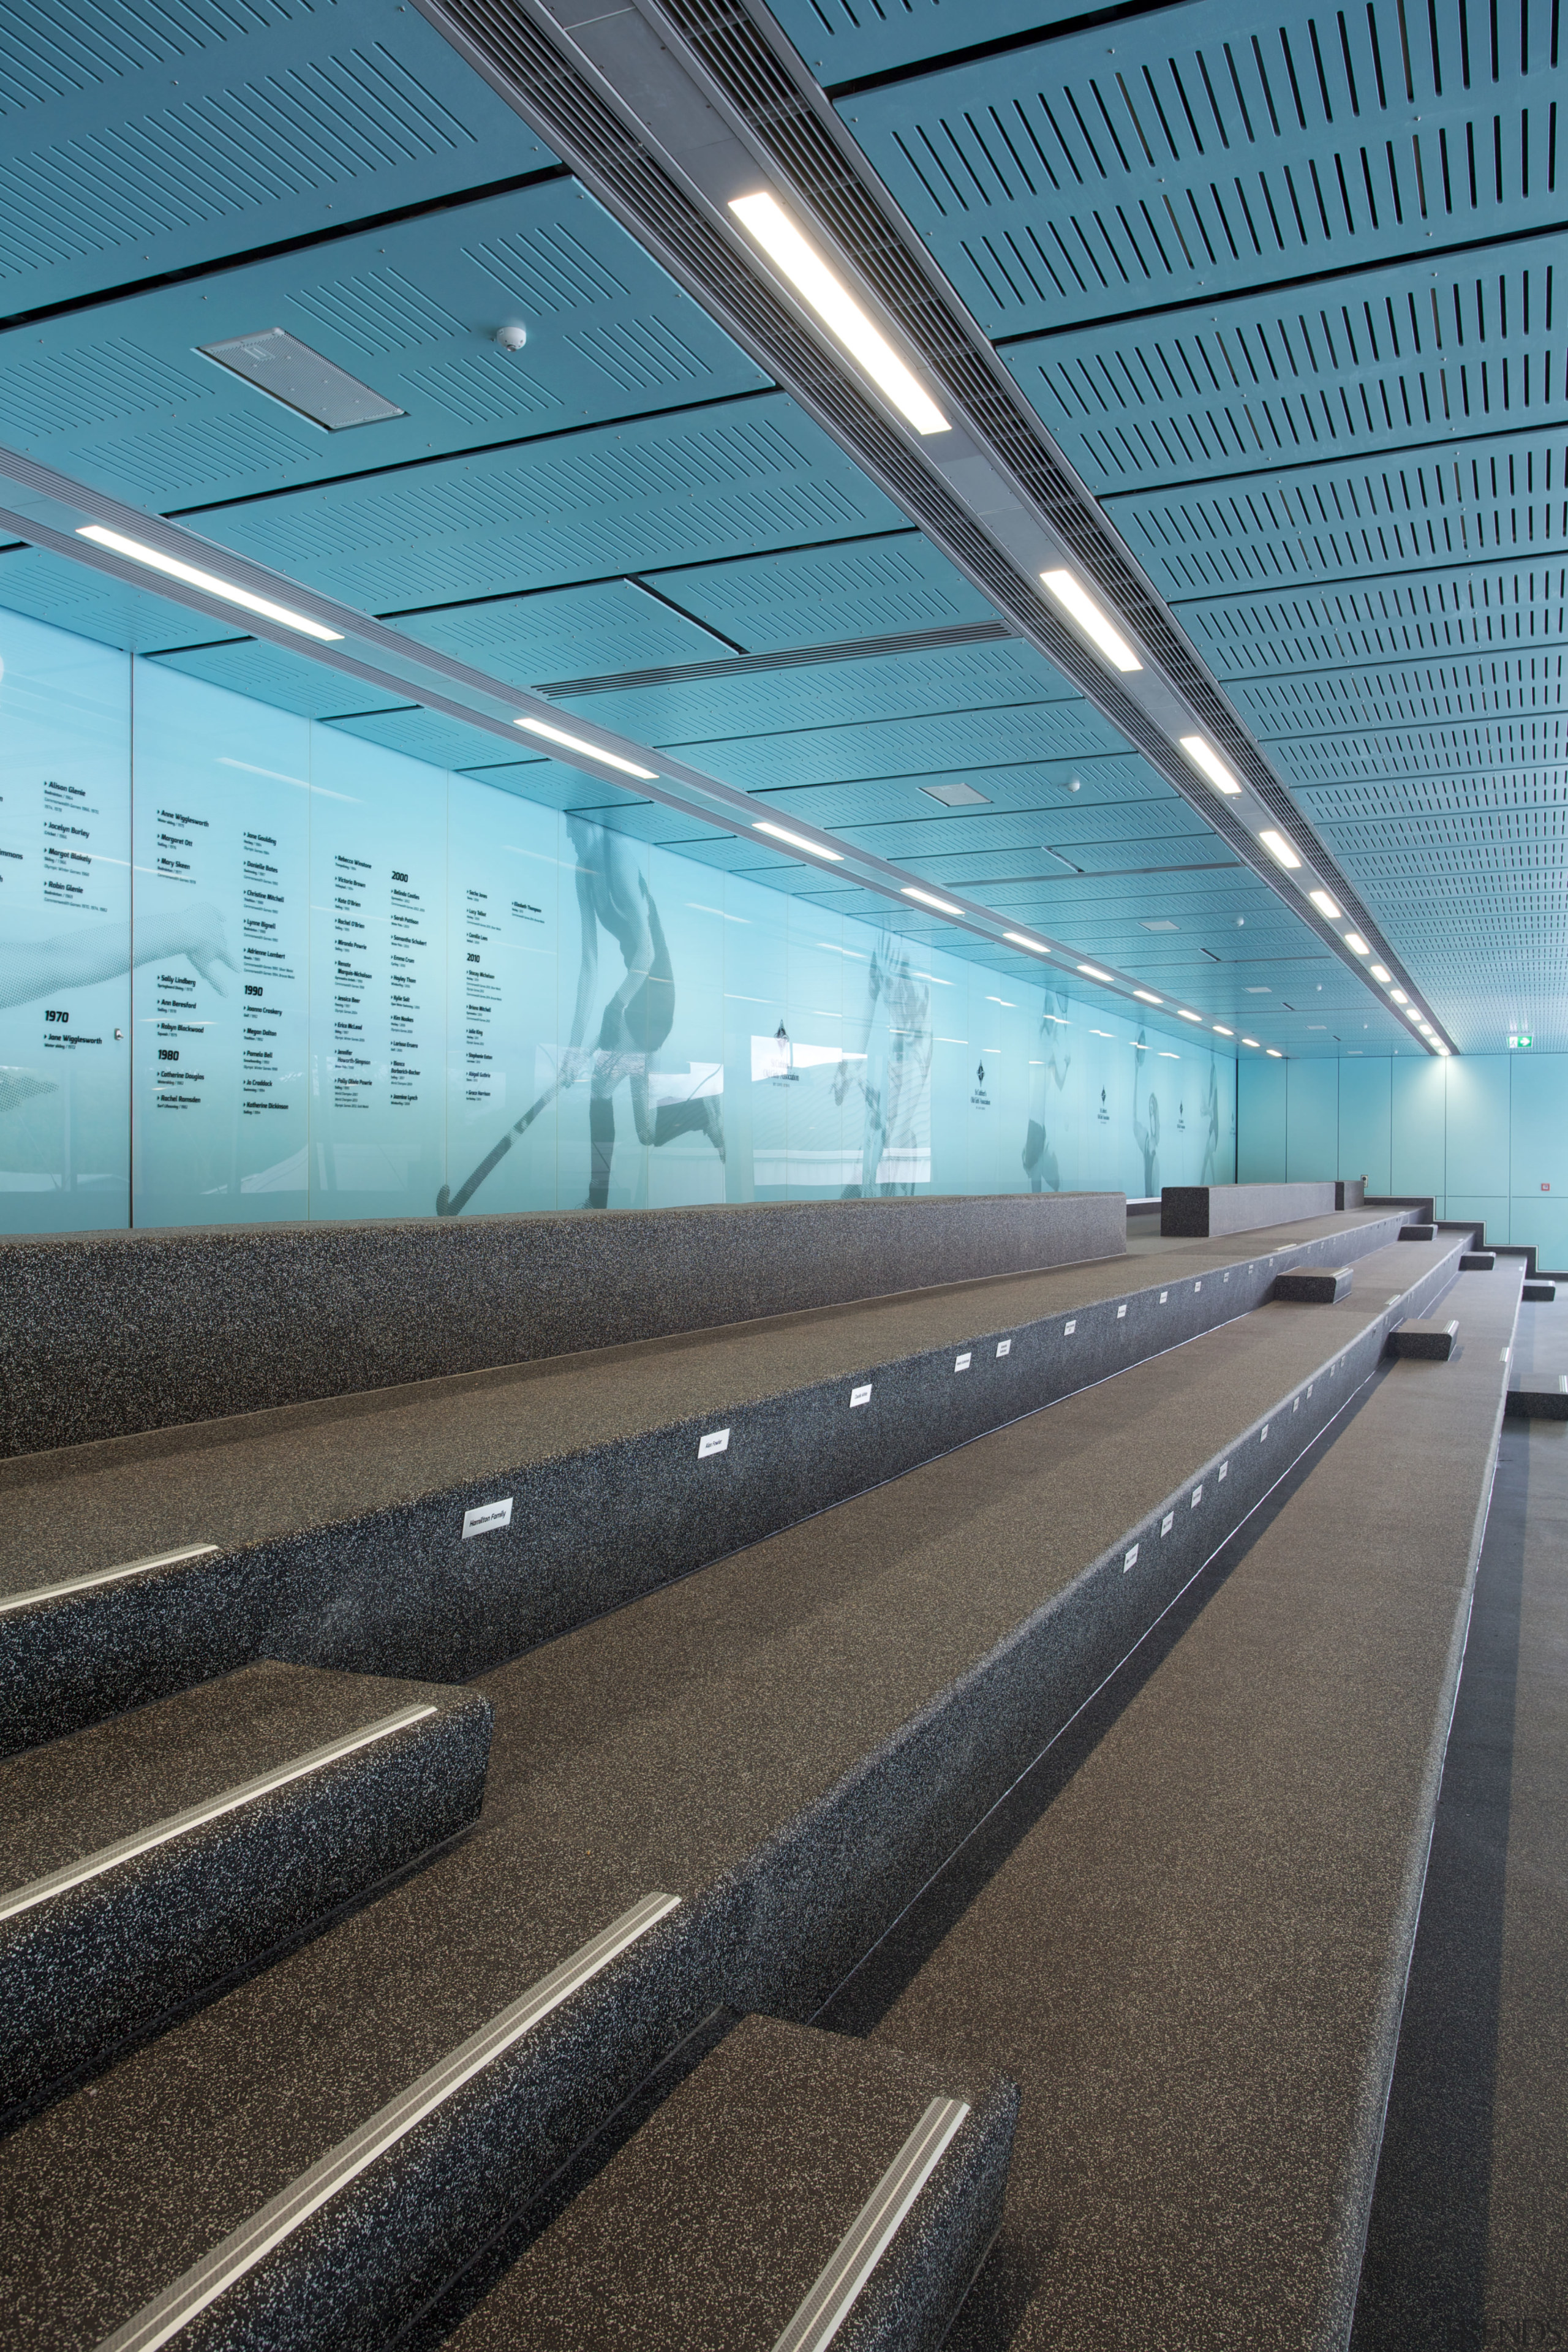 Spectator seating at the St Cuthberts Centennial Centre airport terminal, architecture, building, daylighting, fixed link, infrastructure, line, metropolitan area, reflection, sky, structure, teal, black